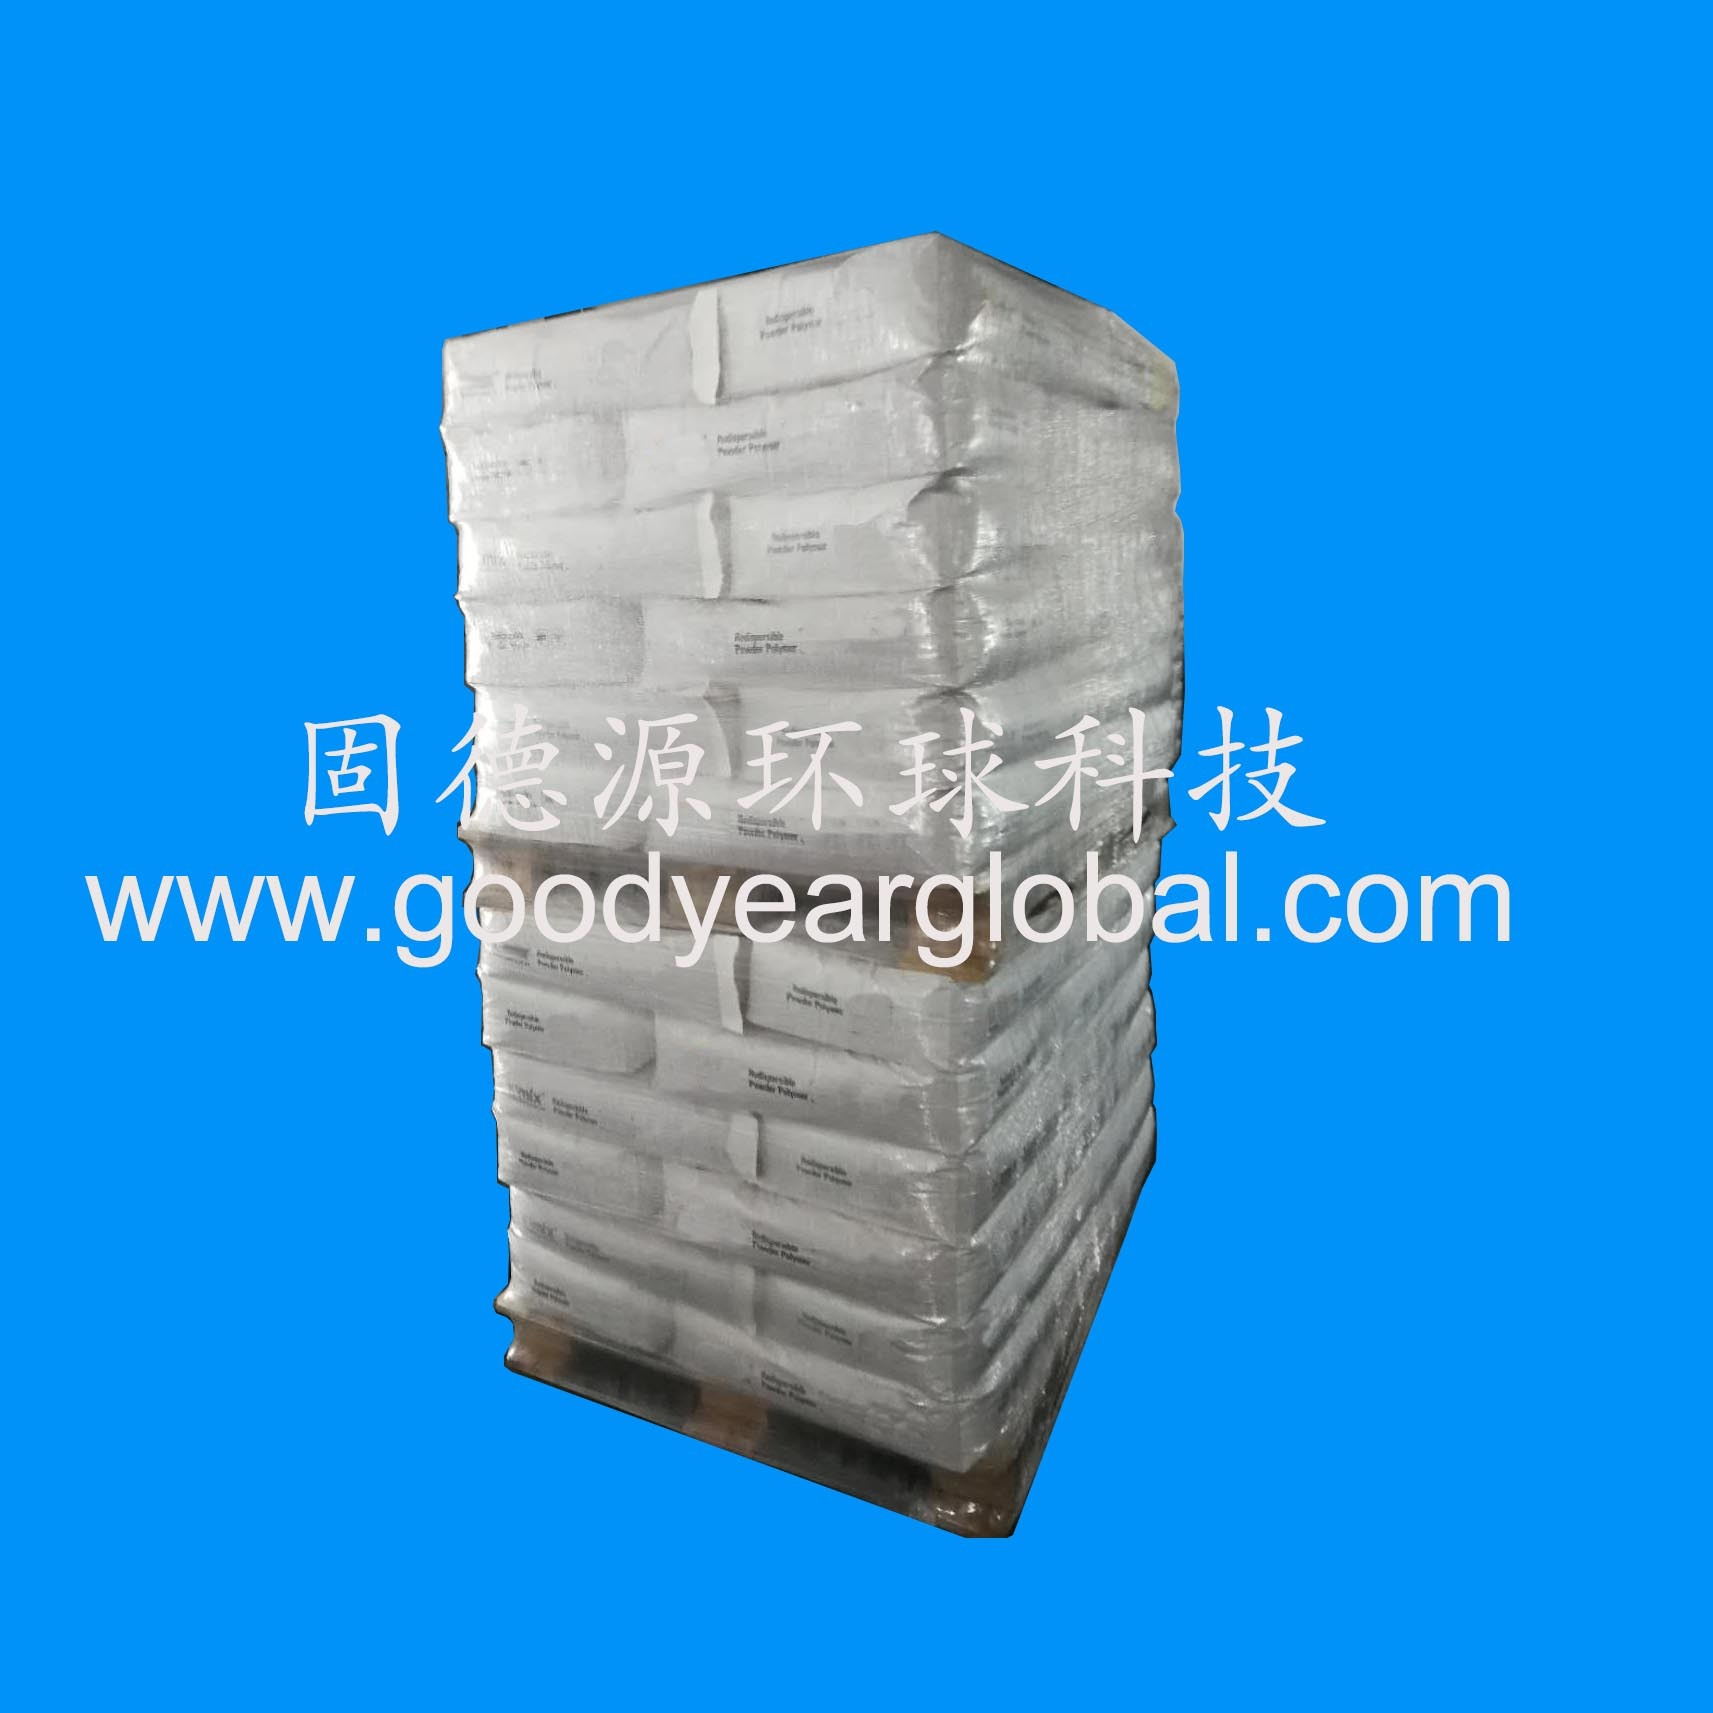 Melamine modified UF Resin Powder / MUF Resin Powder